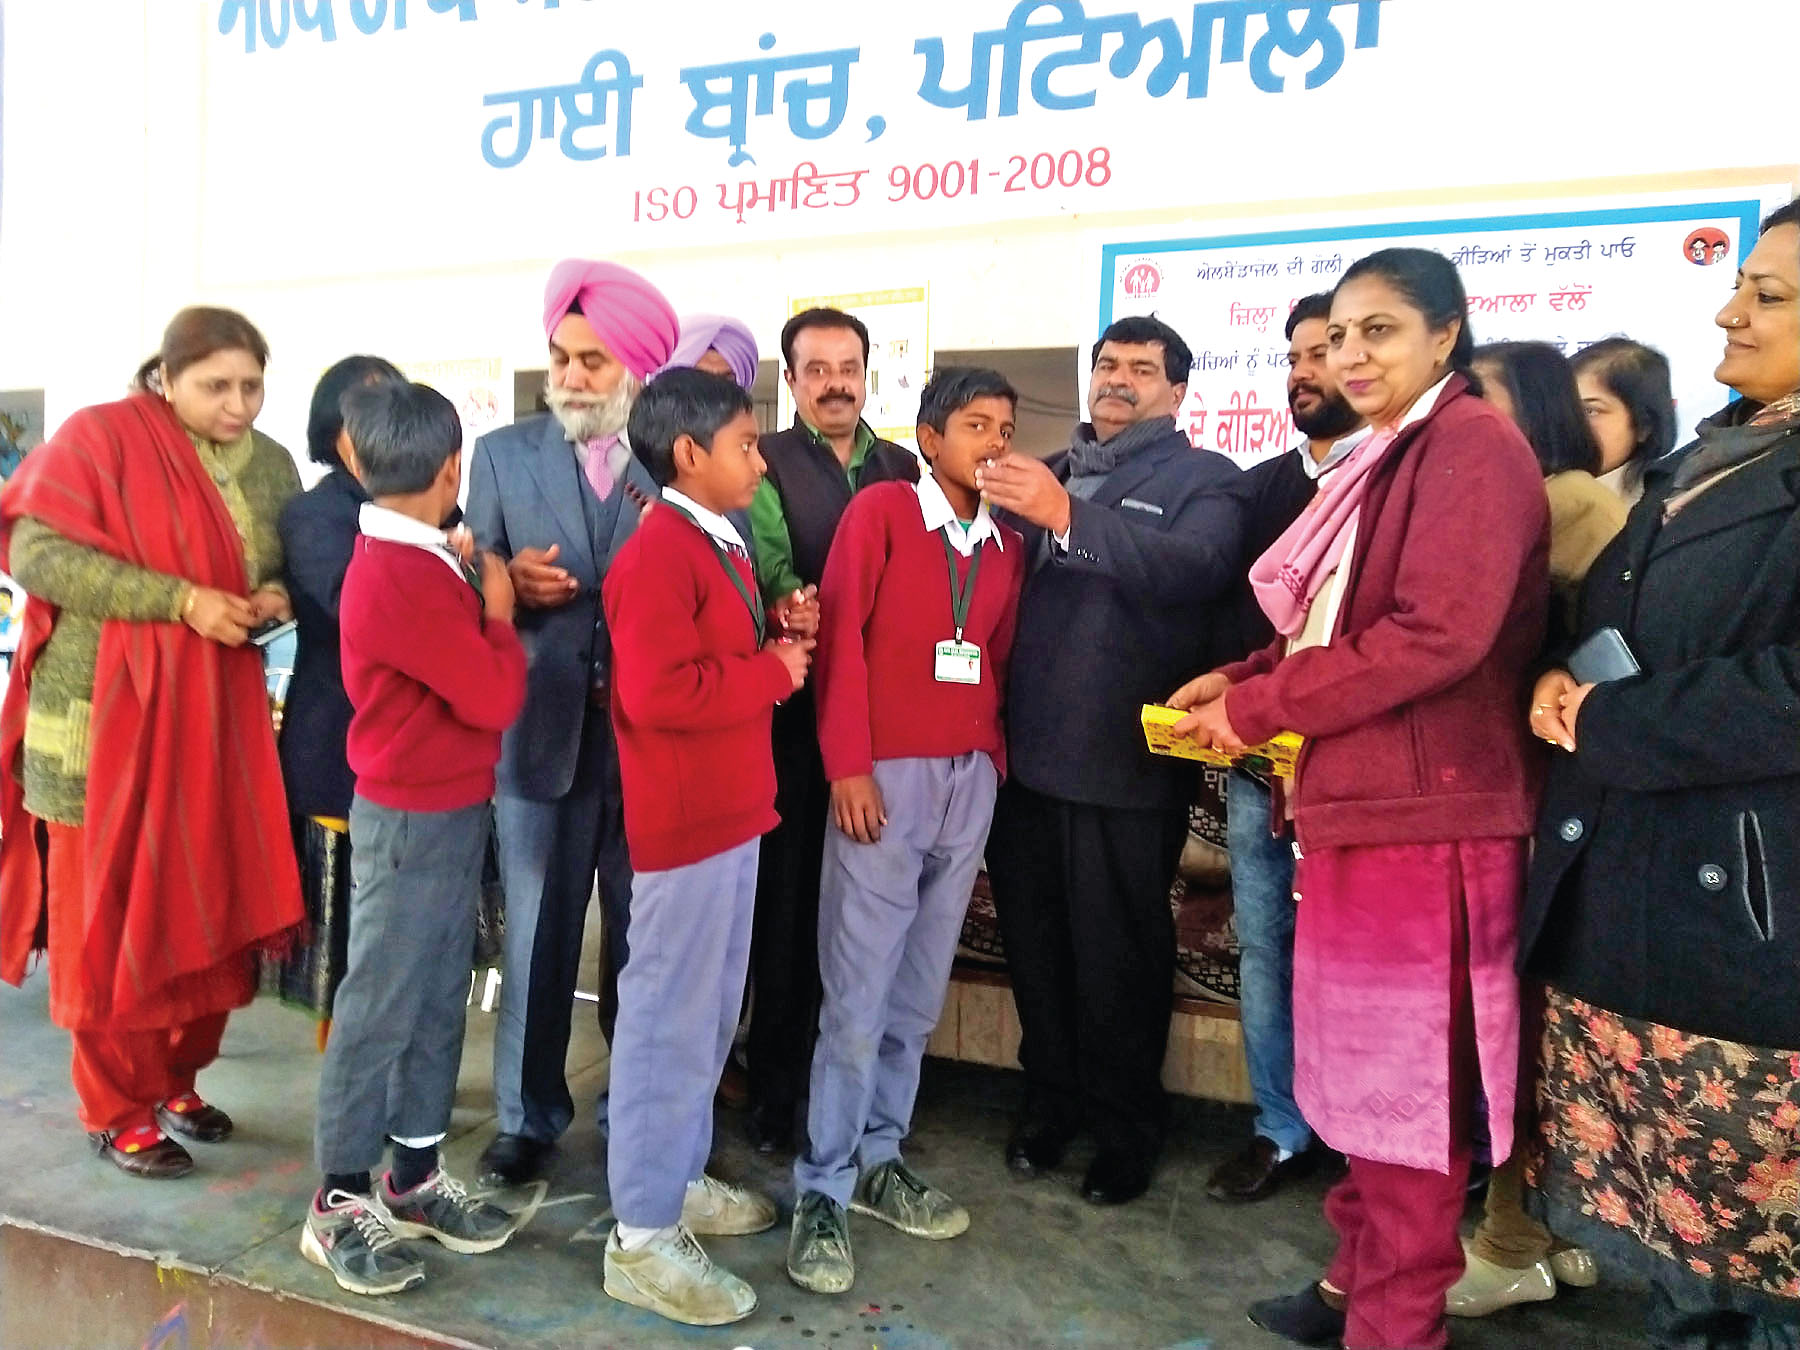 Good health is important for good education: Dr. Malhotra